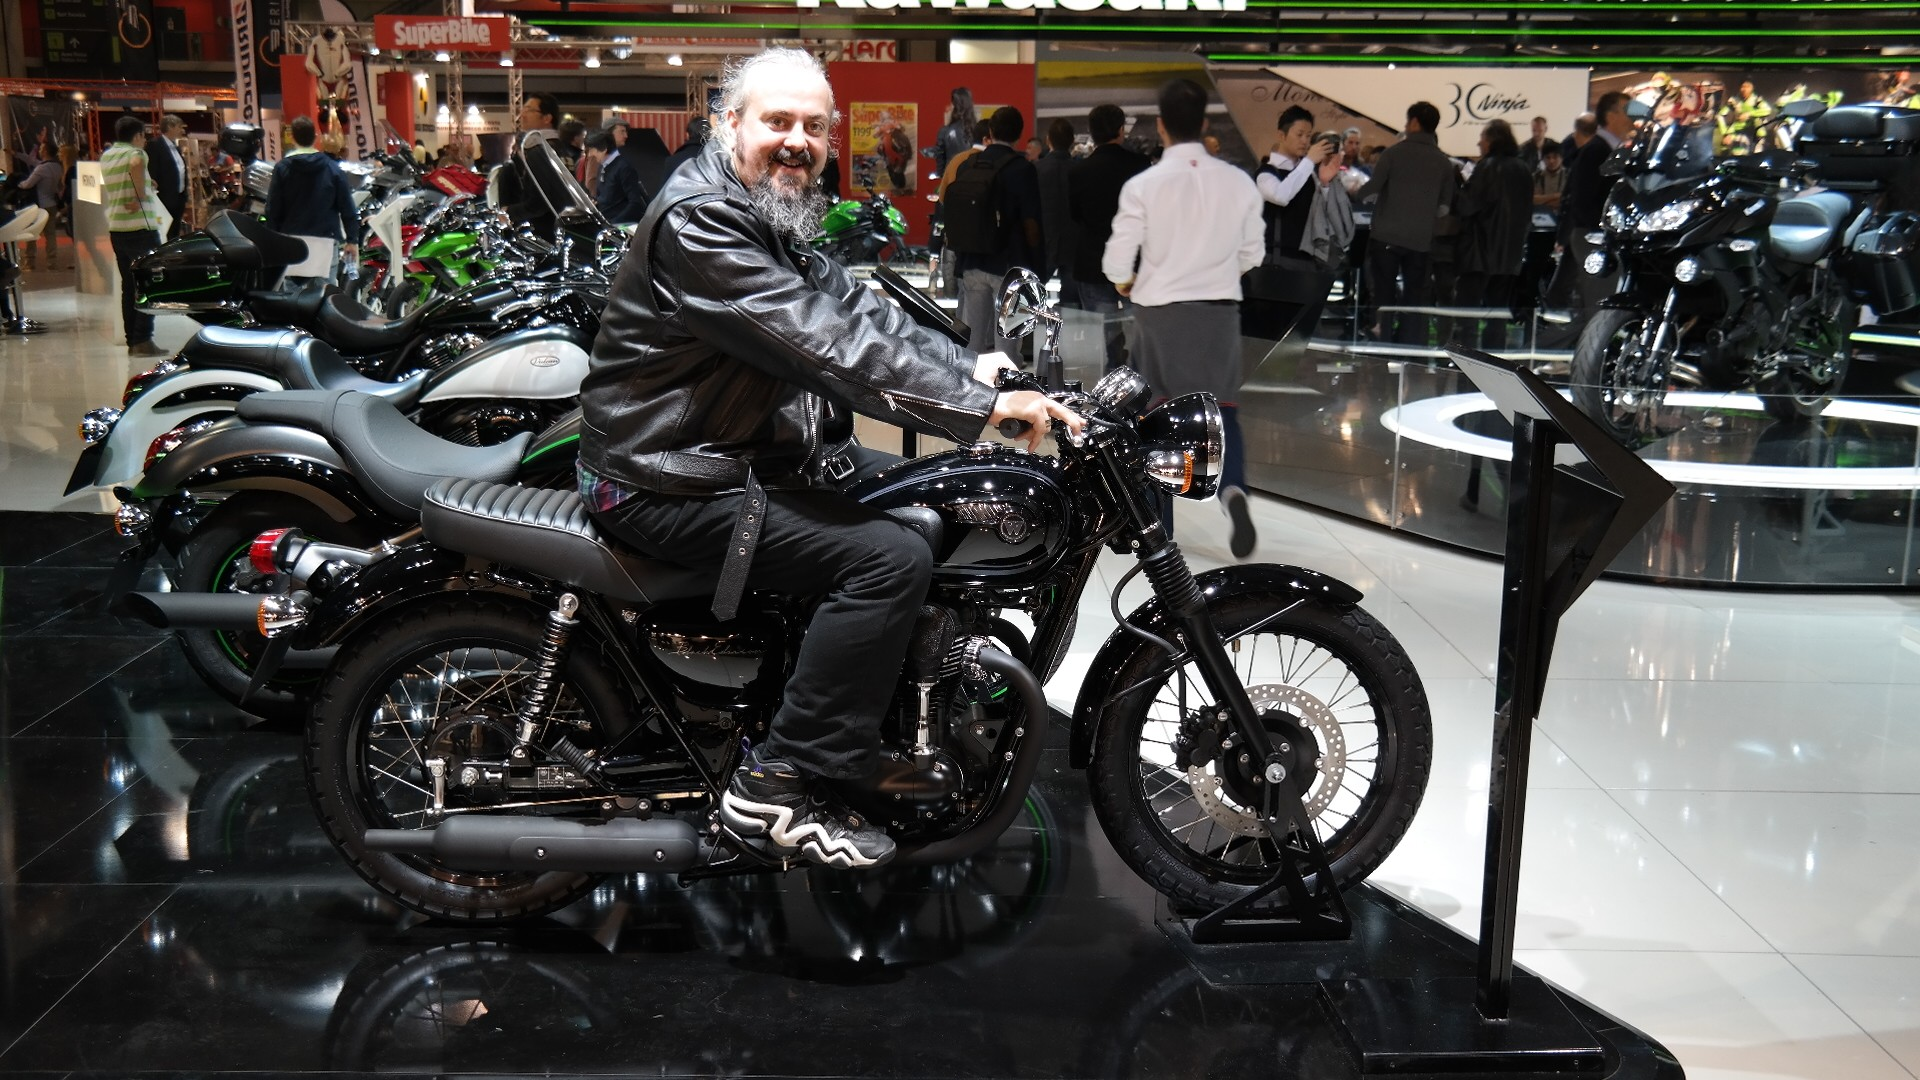 2015 Kawasaki W800 Black Edition Is As Elegant It Gets Wiring Diagram Our Editor Florin Tibu On The